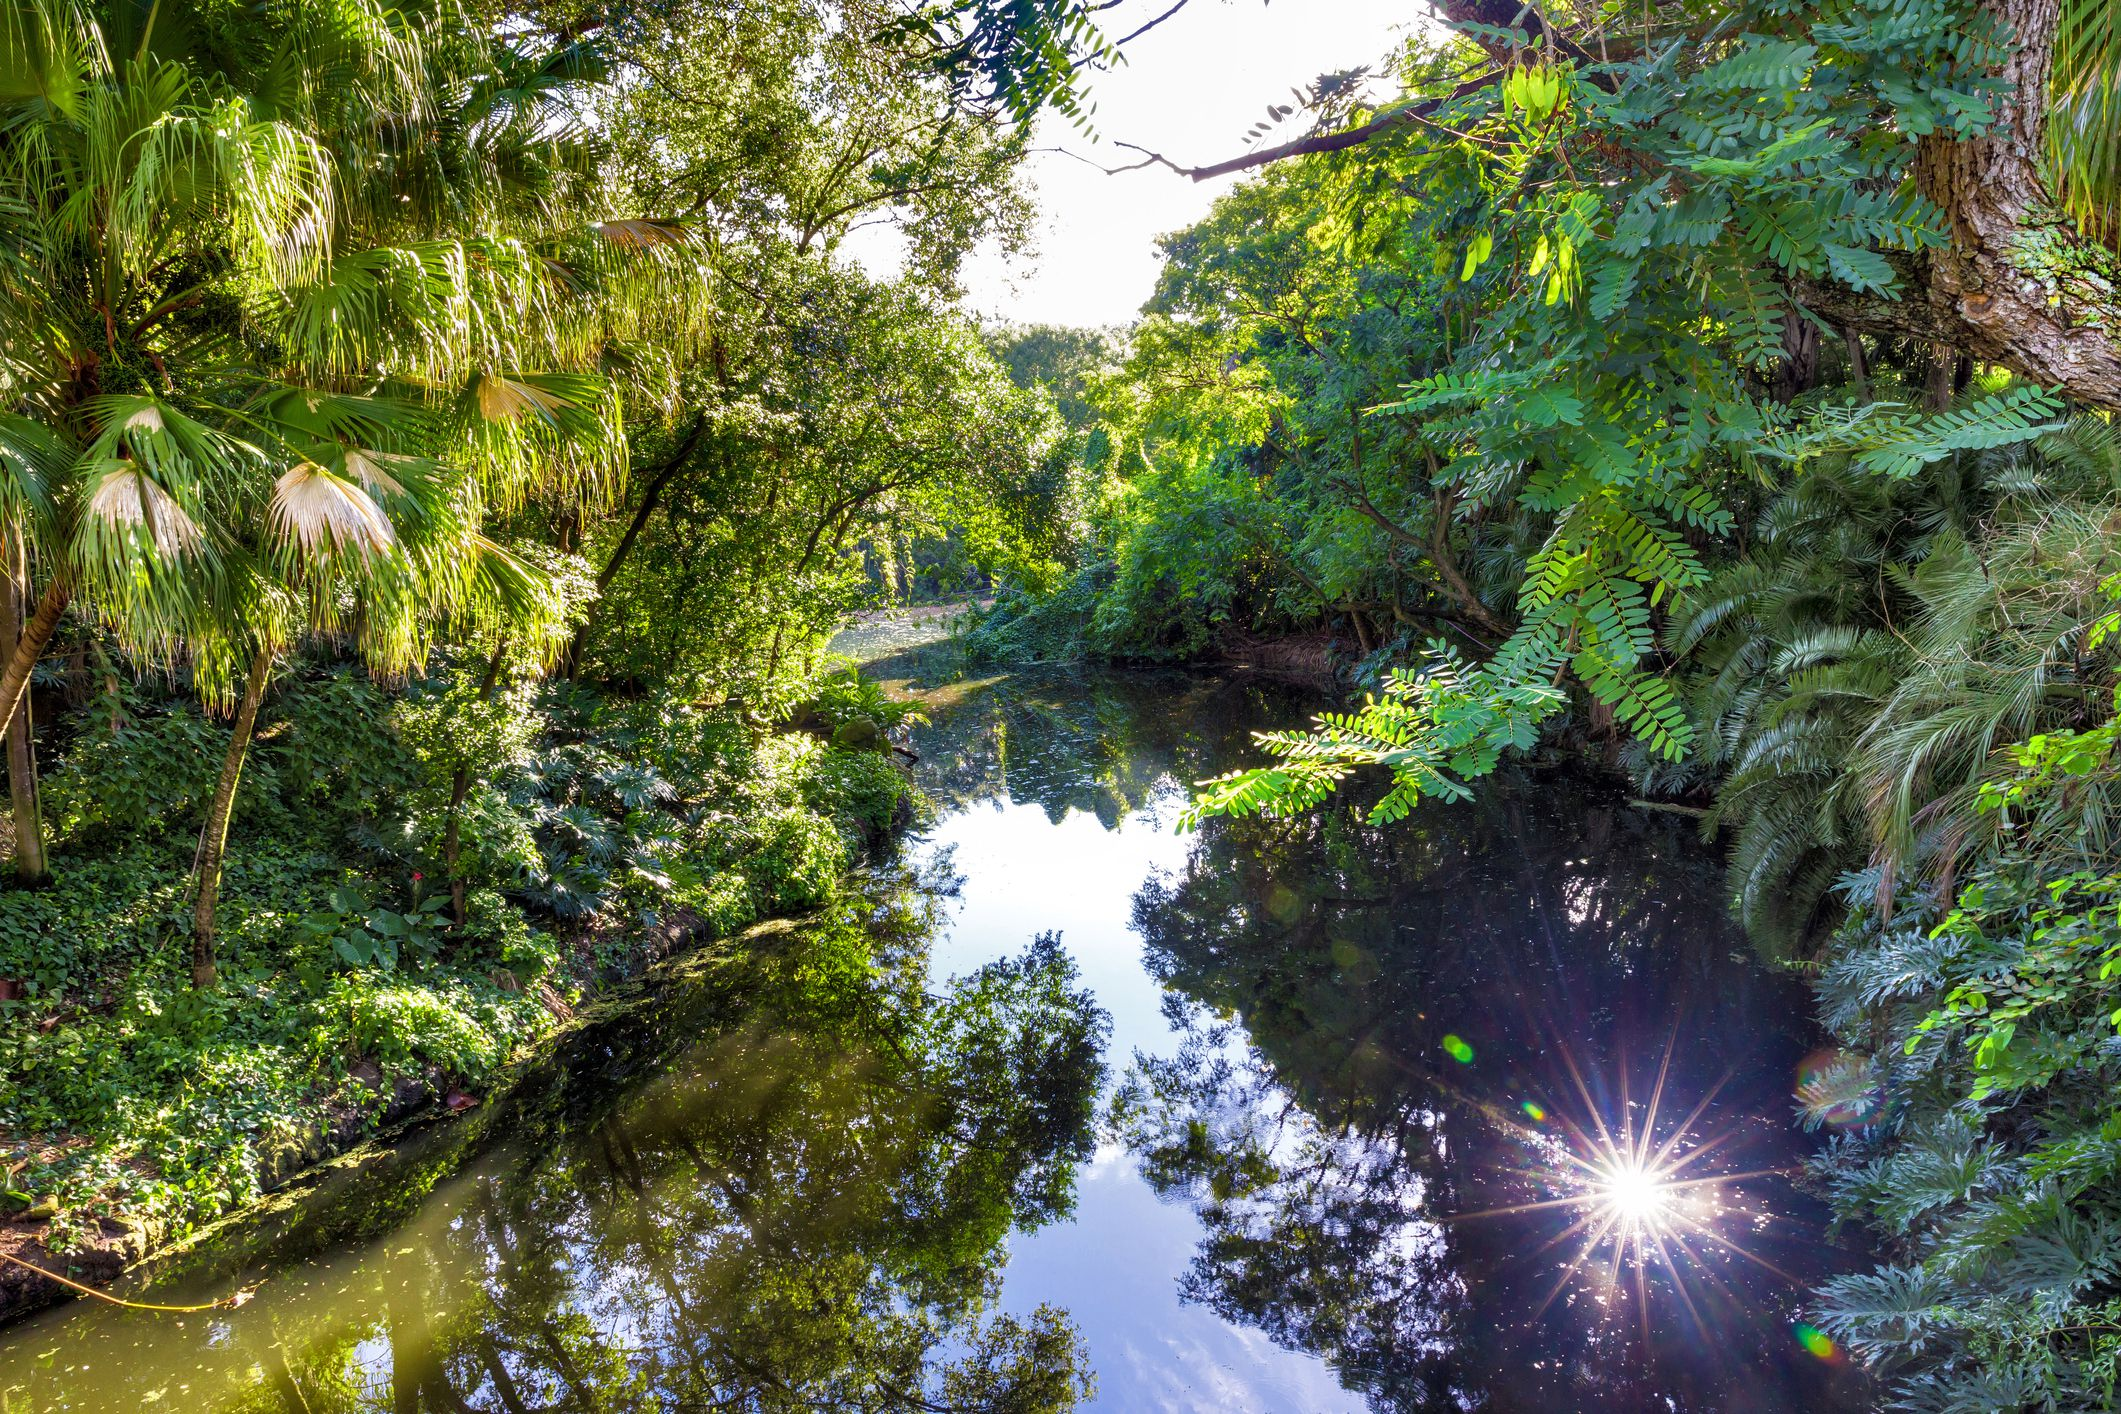 Landscape view of a jungle with a river in a natural environment